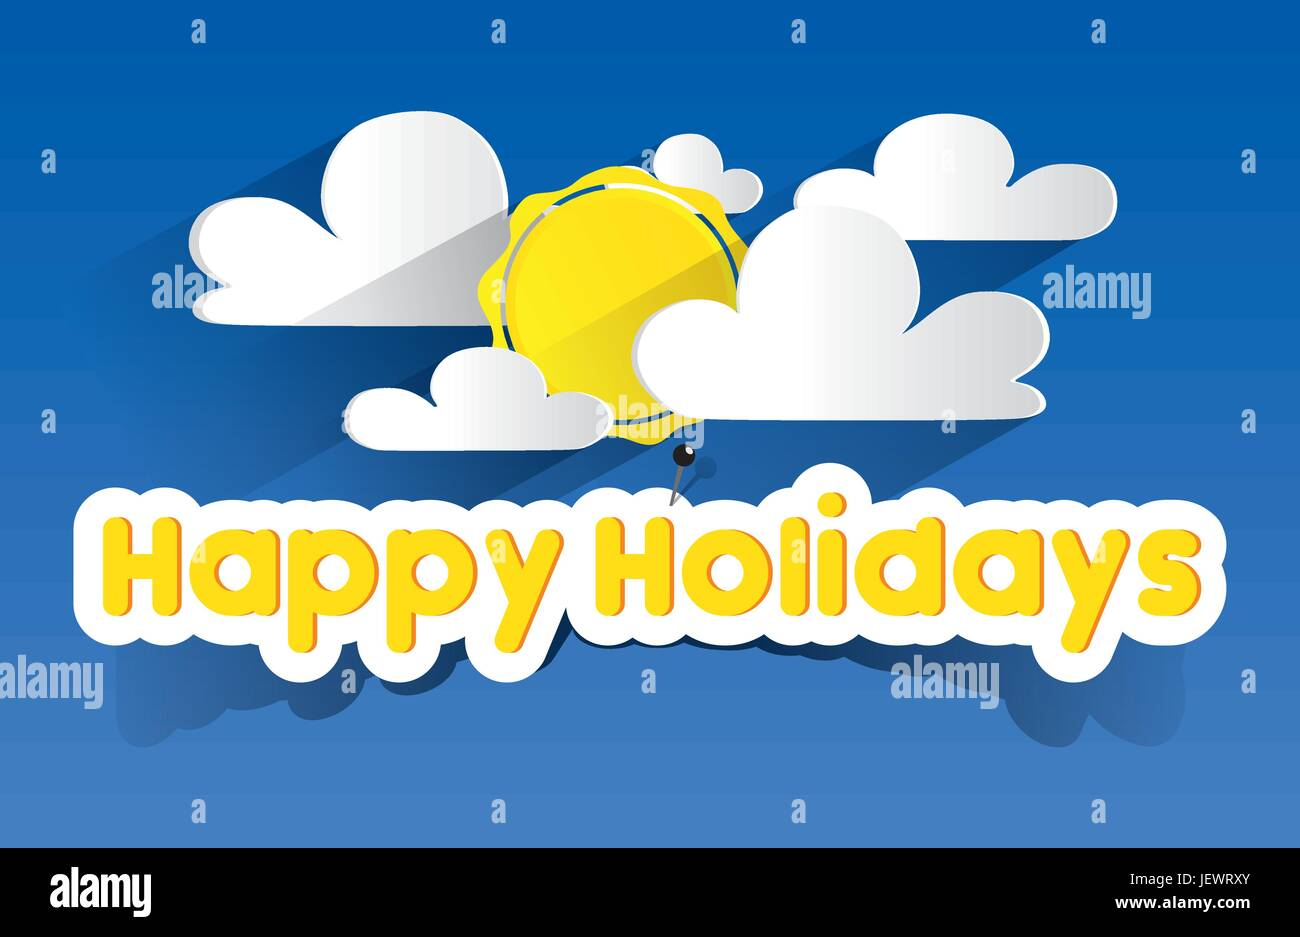 holiday, vacation, holidays, vacations, cloud, summer, summerly, delighted, Stock Vector